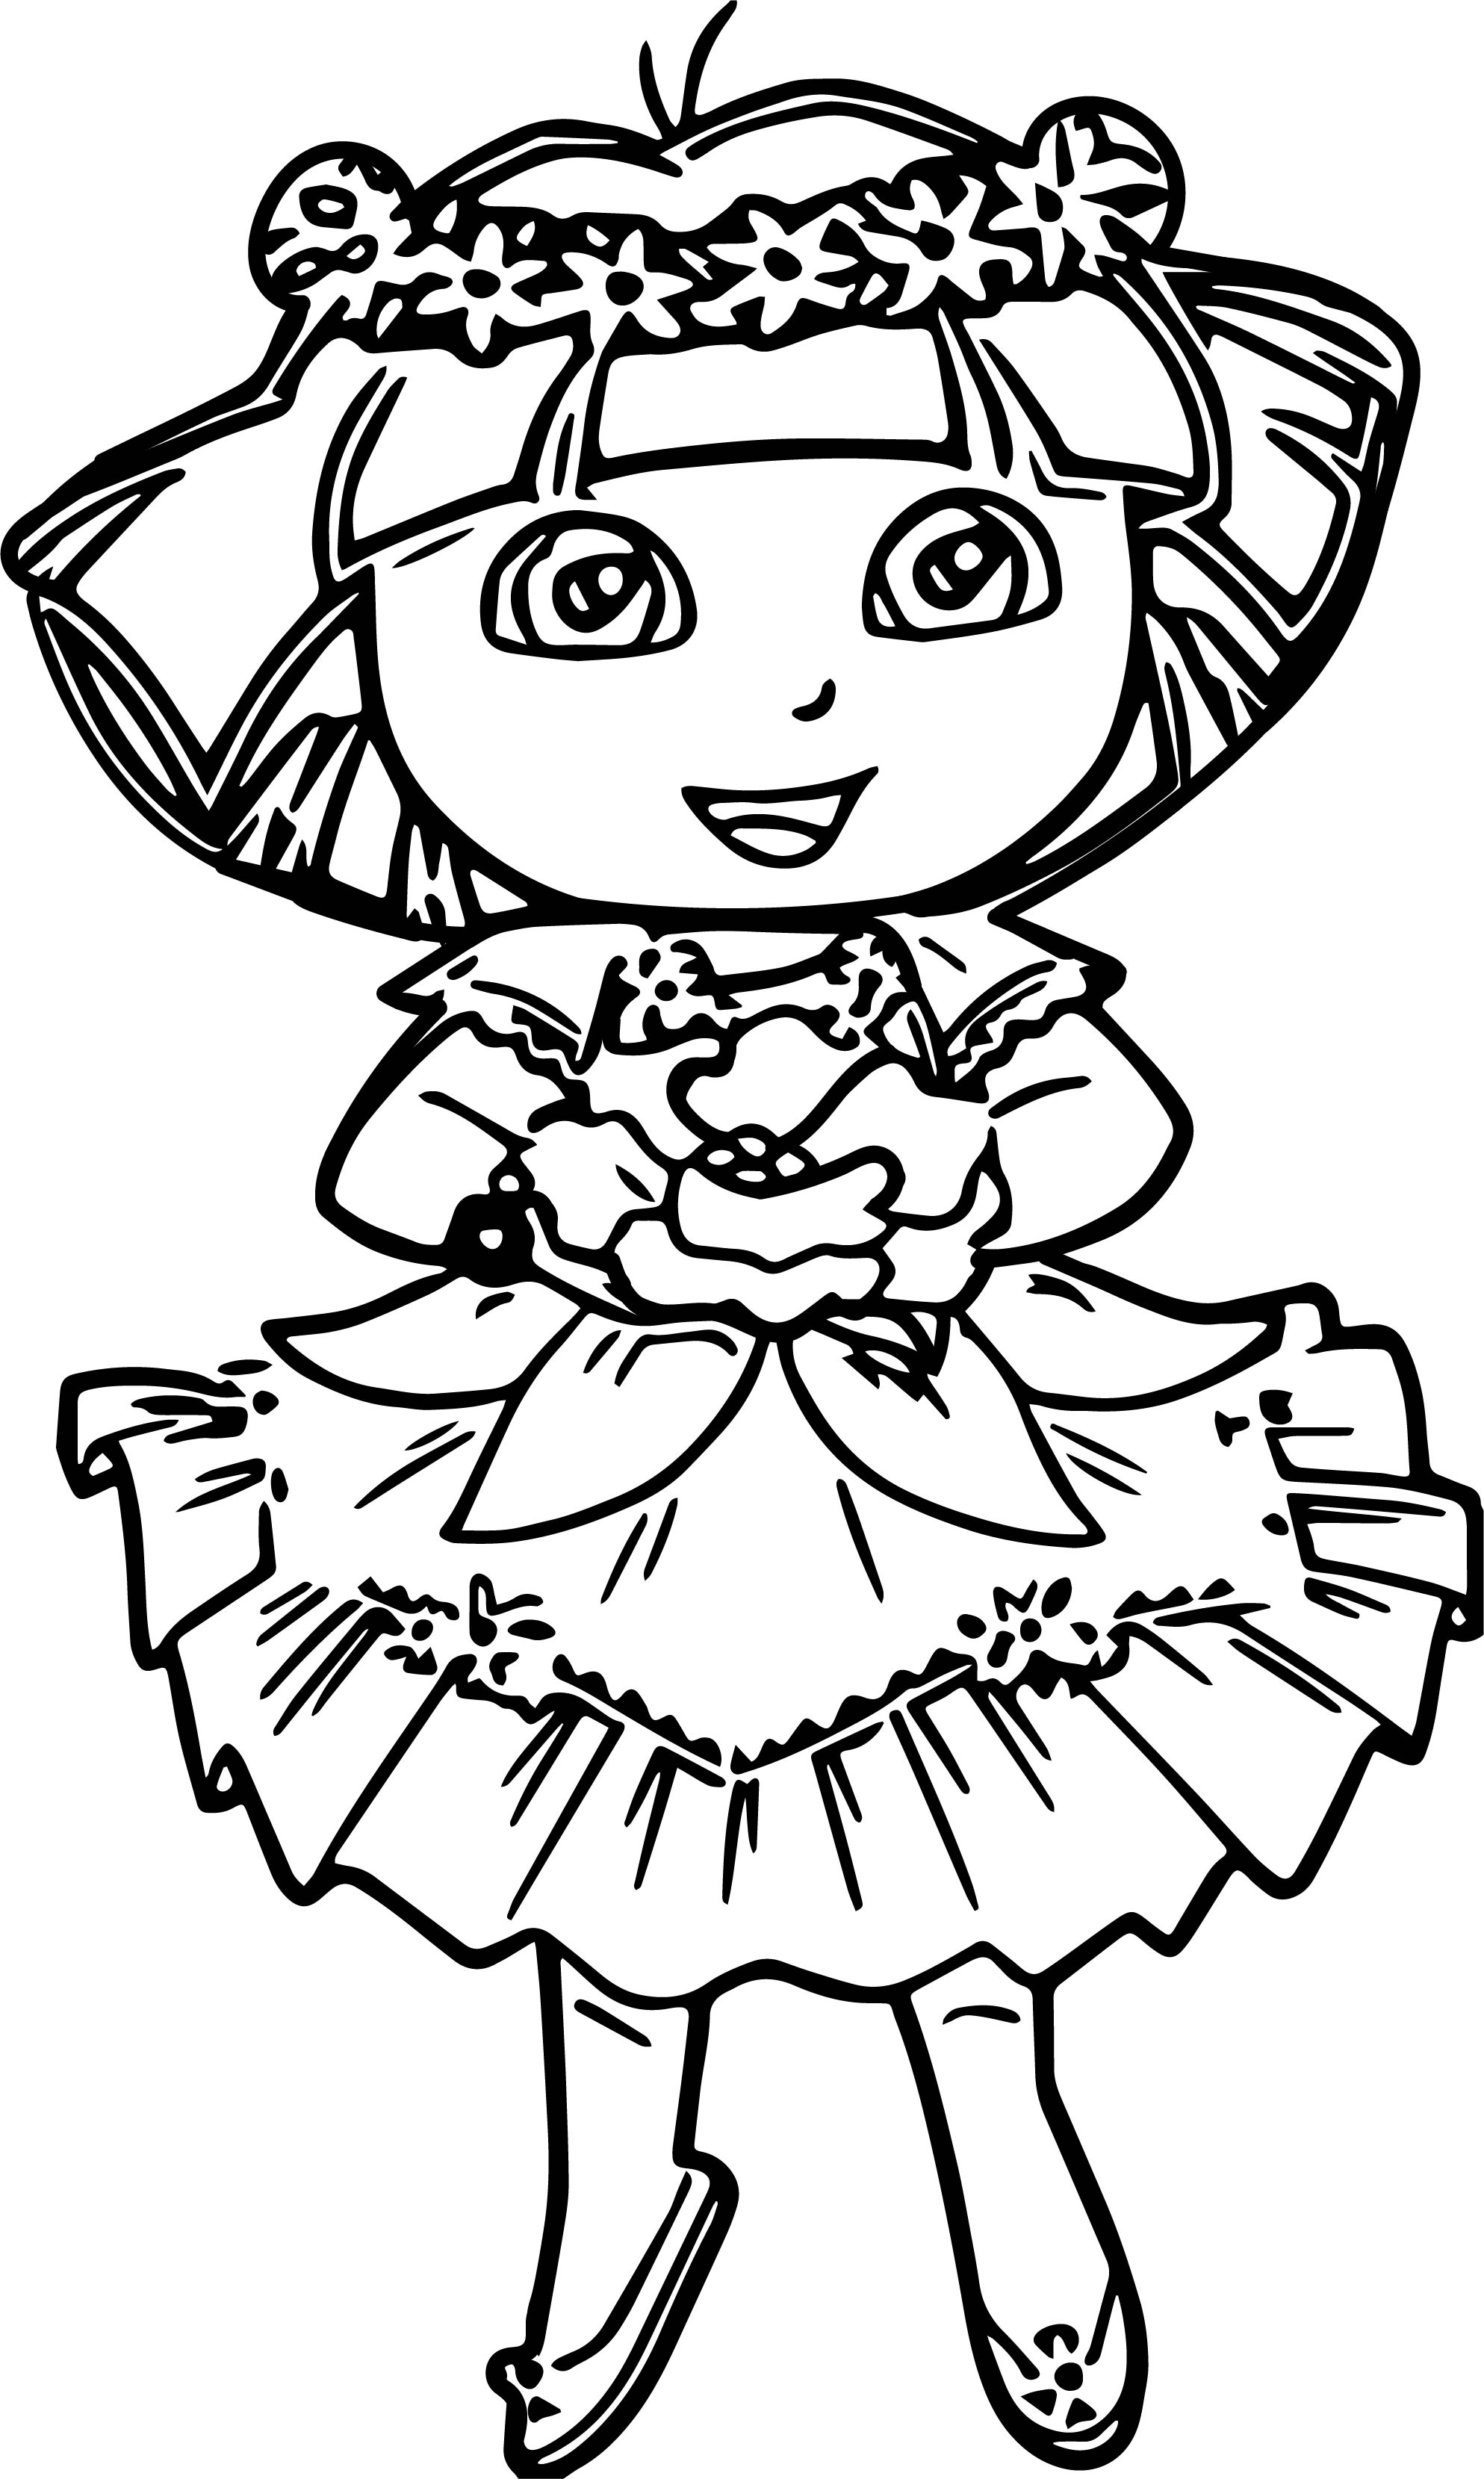 Dora In Enchanted Forest Dress Coloring Pages | Wecoloringpage